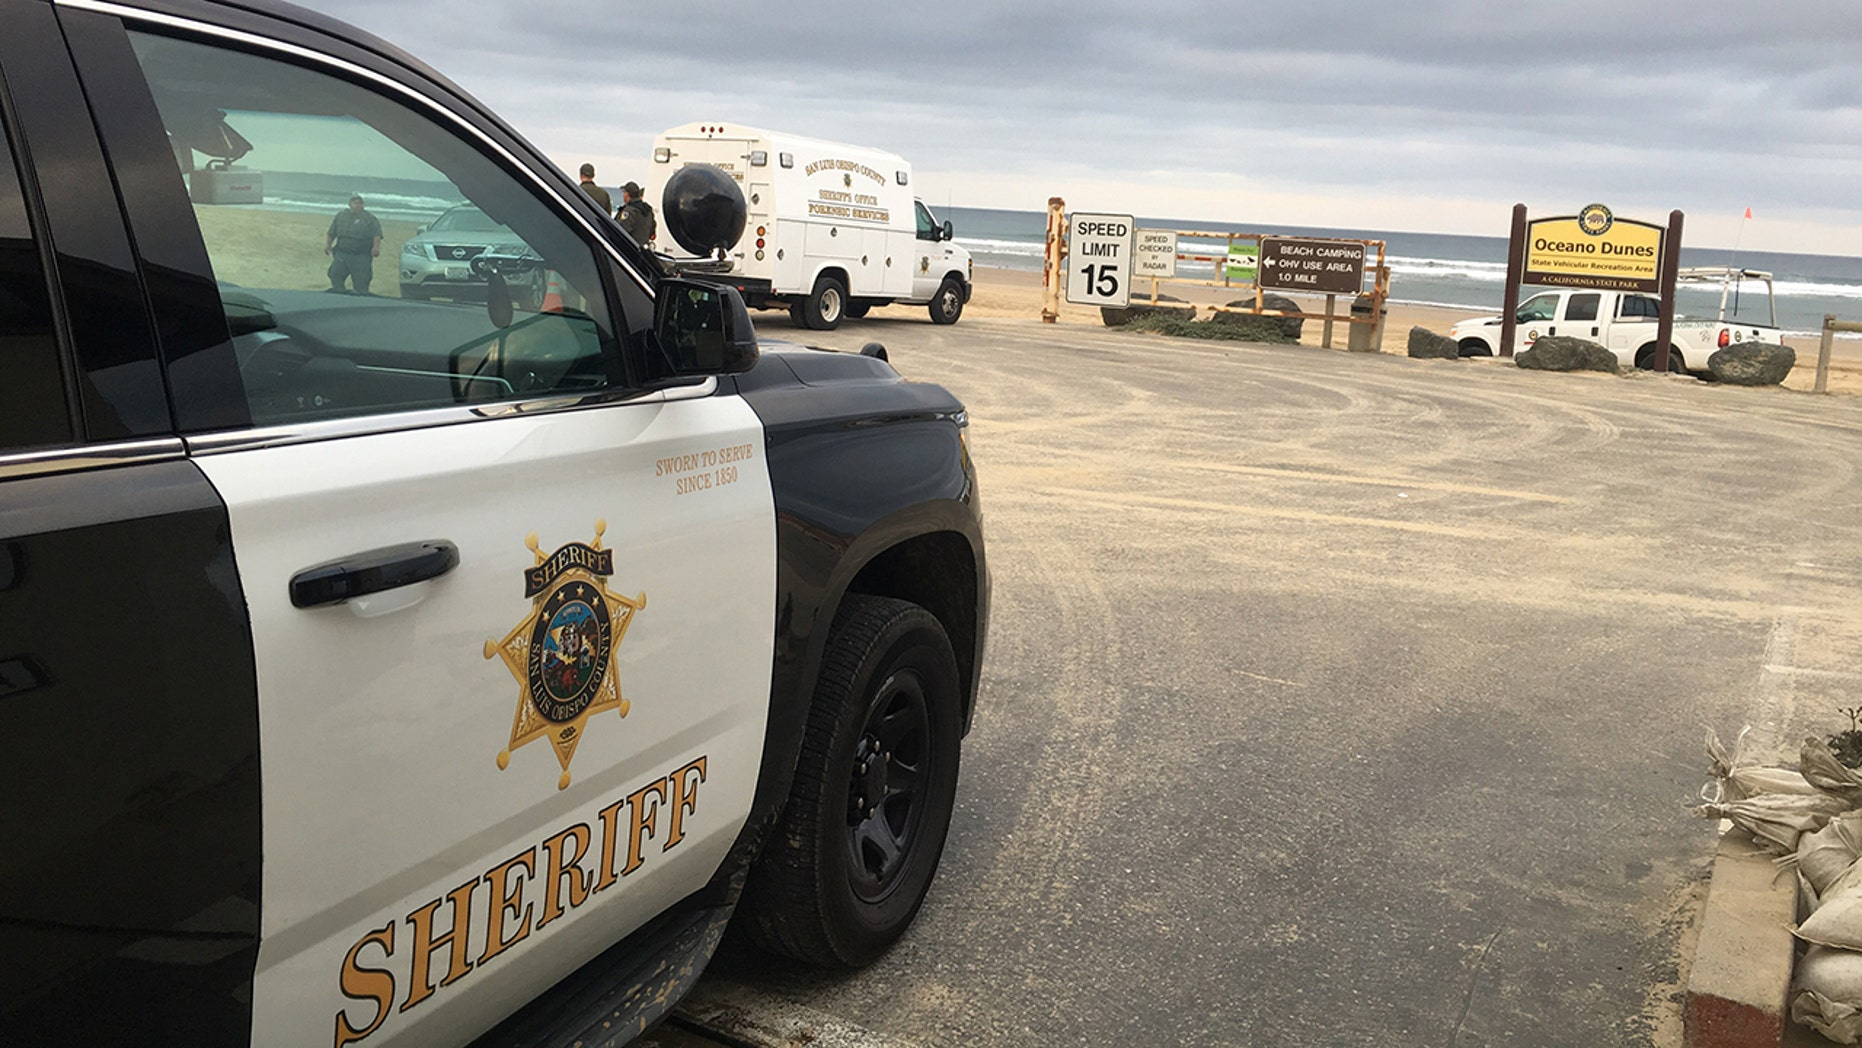 Westlake Legal Group Oceano-Dunes-SPD 5 people hospitalized after California shooting: suspect still at large fox-news/us/us-regions/west/california fox-news/us/crime/police-and-law-enforcement fox-news/us fox-news/travel/general/beach fox news fnc/us fnc David Aaro d3b71ffc-5bc1-5725-823a-c319ff50ebec article